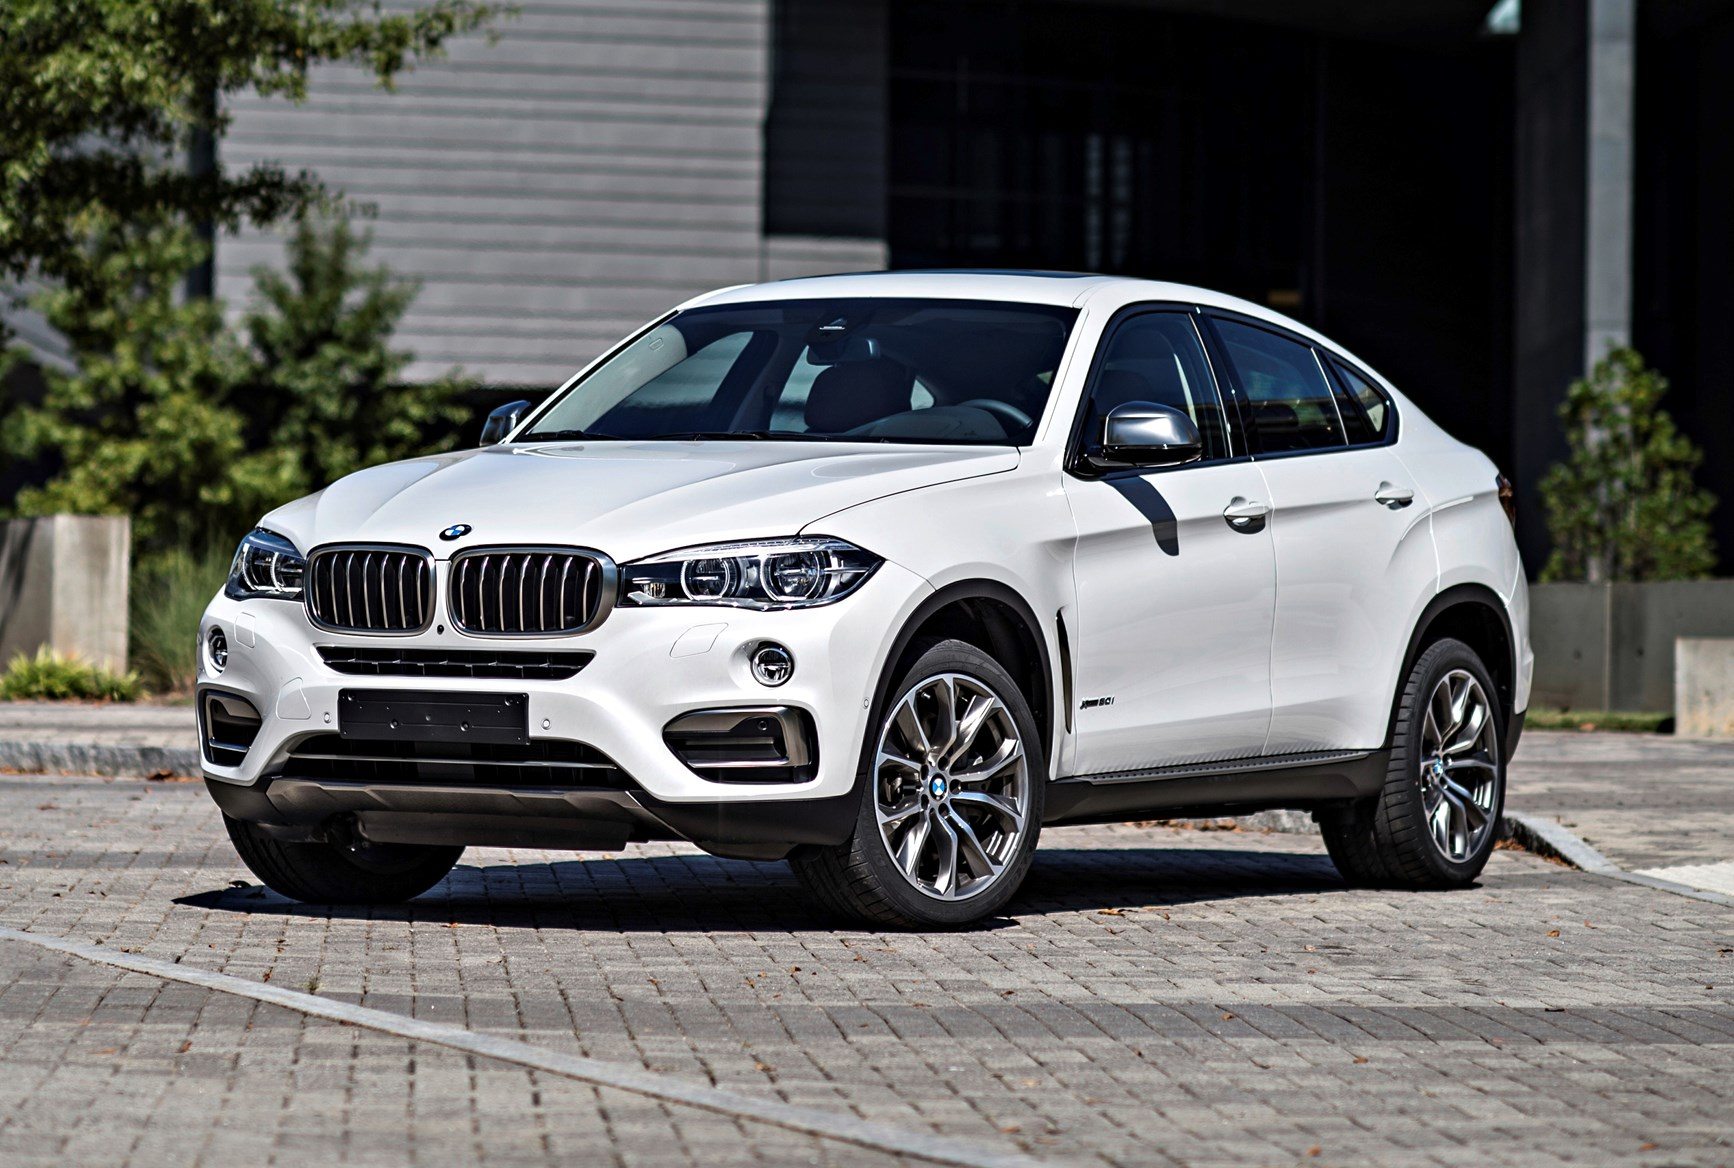 Bmw X5 Towing >> 2014 X6 Towing Capacity | Autos Post